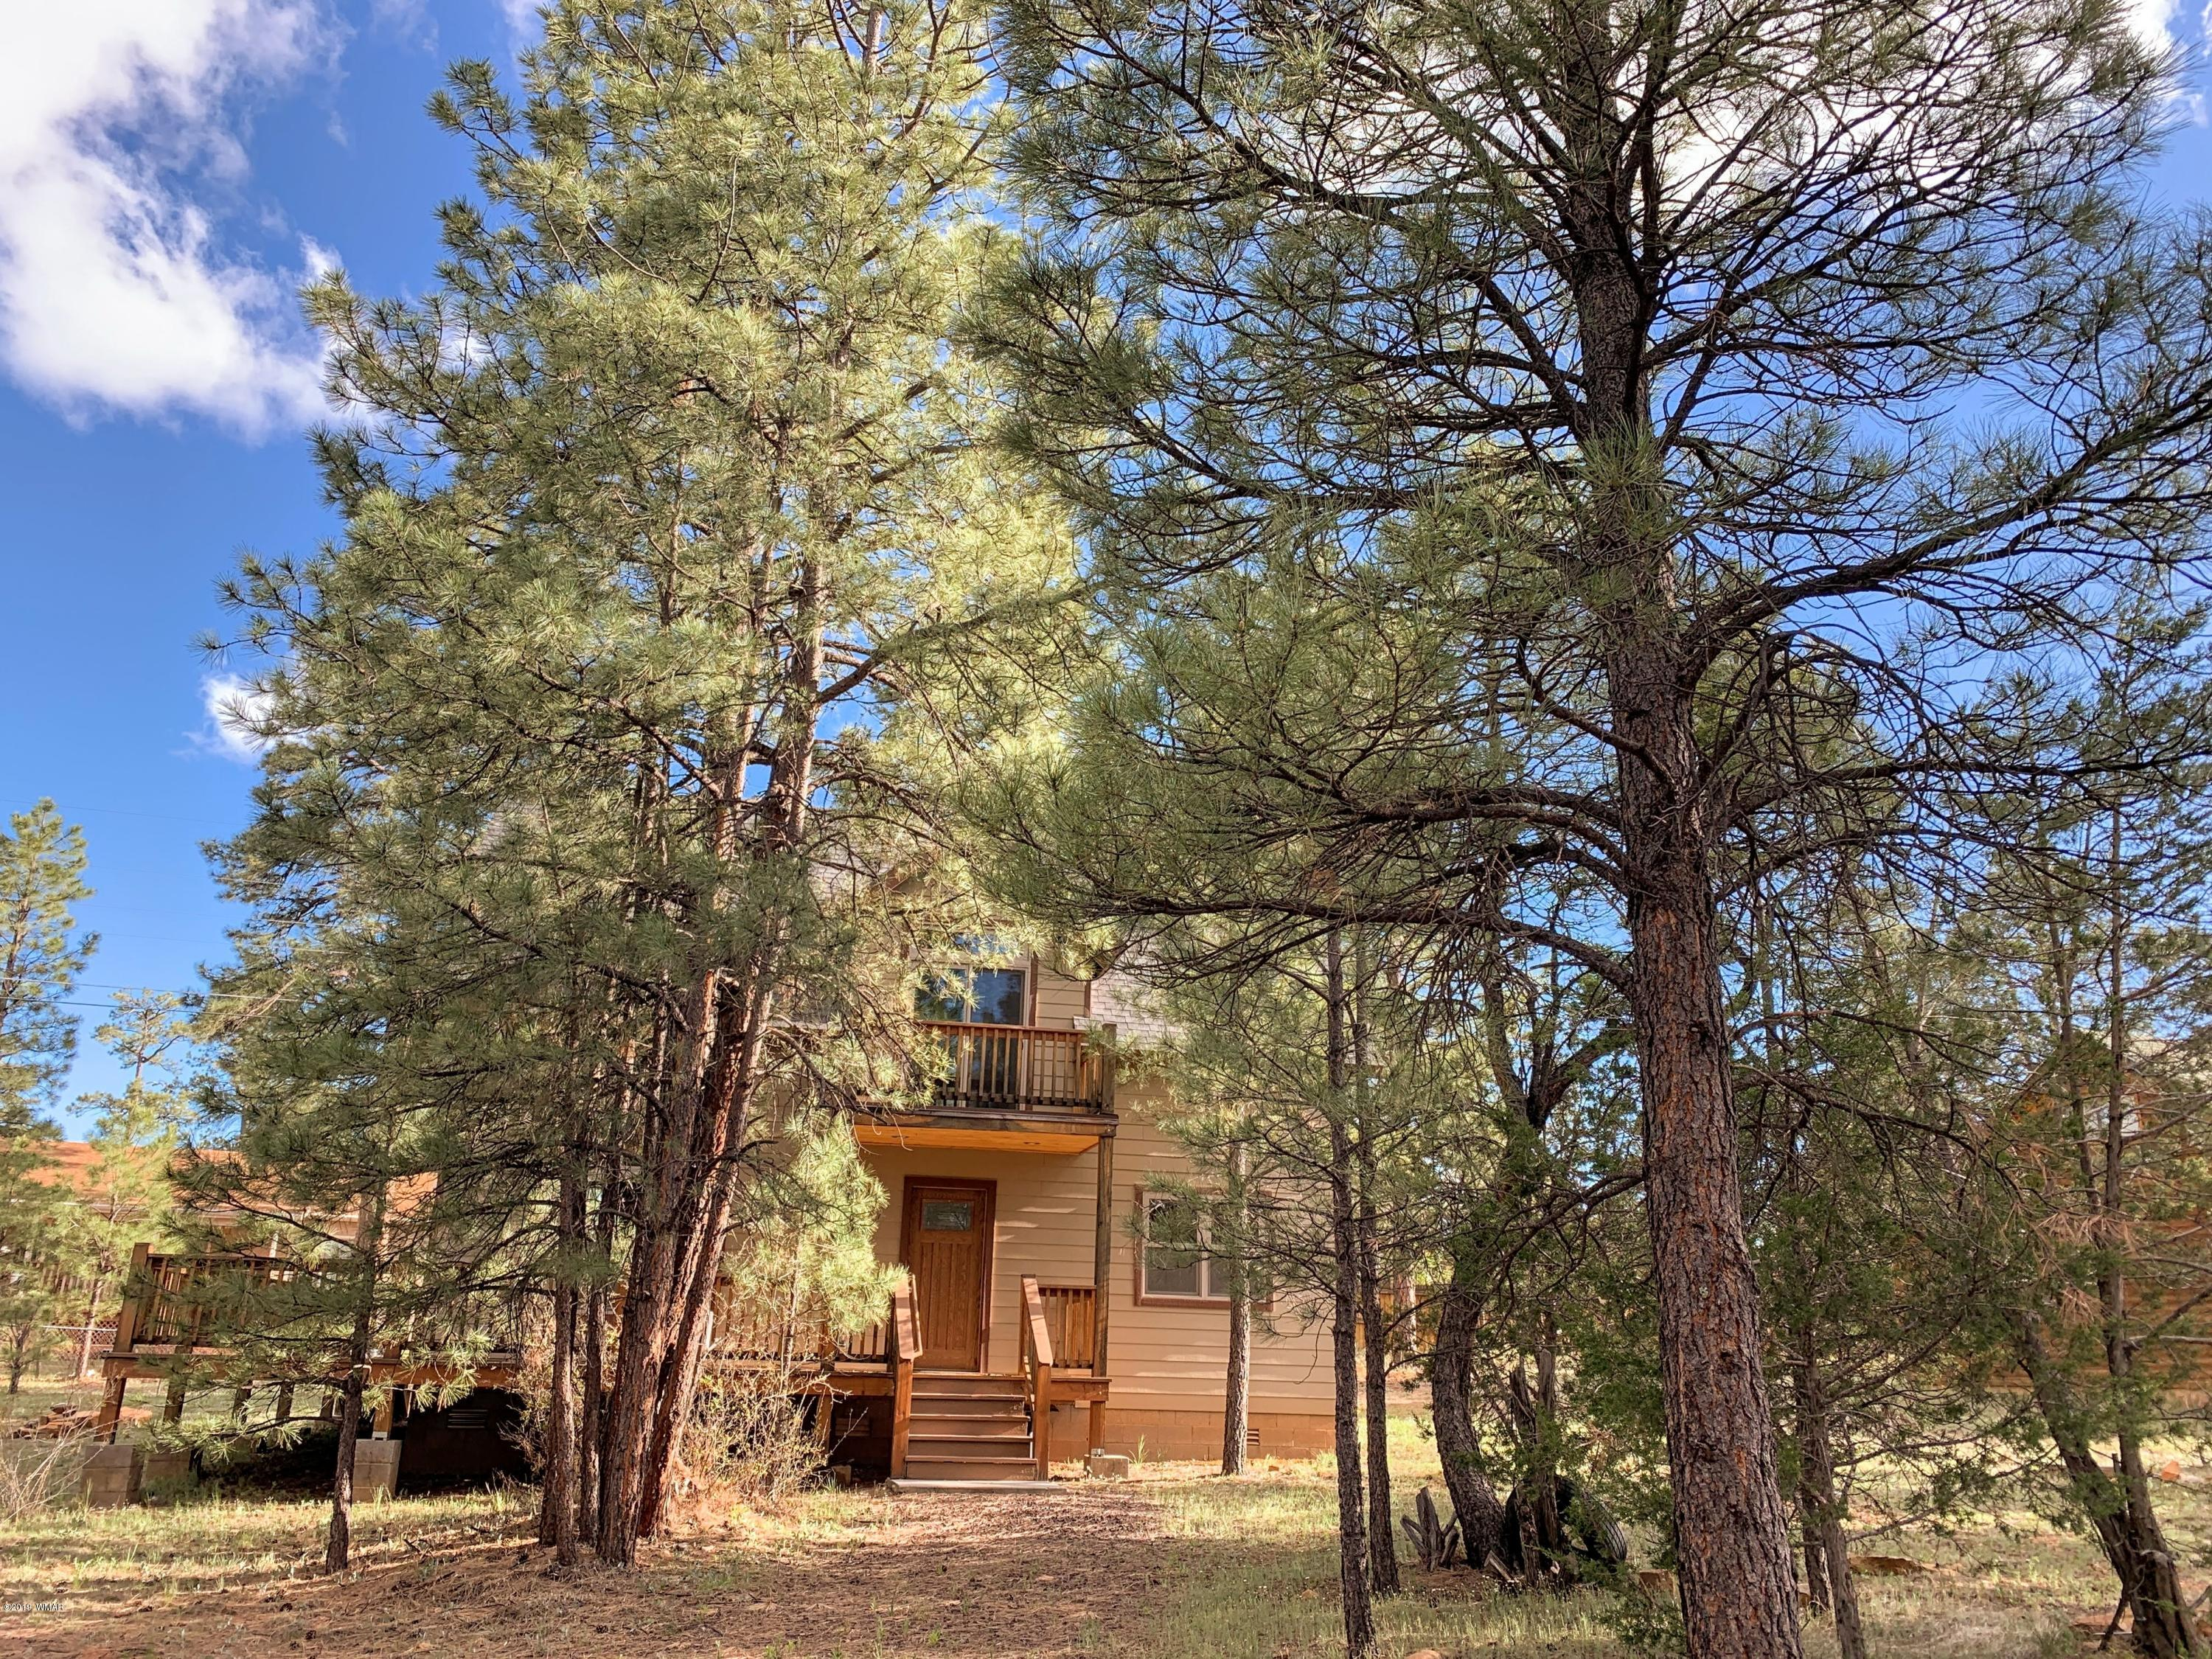 Behind the trees and encompassed in the towering ponderosa pines you will find your mountain getaway. The 2 story wood vaulted ceiling provides a spacious retreat. The wall of windows brings the outdoors in. Open floor plan with cozy kitchen and granite counter tops and breakfast bar is perfect for entertaining.  There is 3 bedrooms and 2 full baths. The master has a large walk in closet and unique wood vaulted ceiling with a  deck to enjoy the view of the ponderosa pines. Plenty of storage and a utility room. Private feel with the large yard. Move right in and enjoy the white mountains.